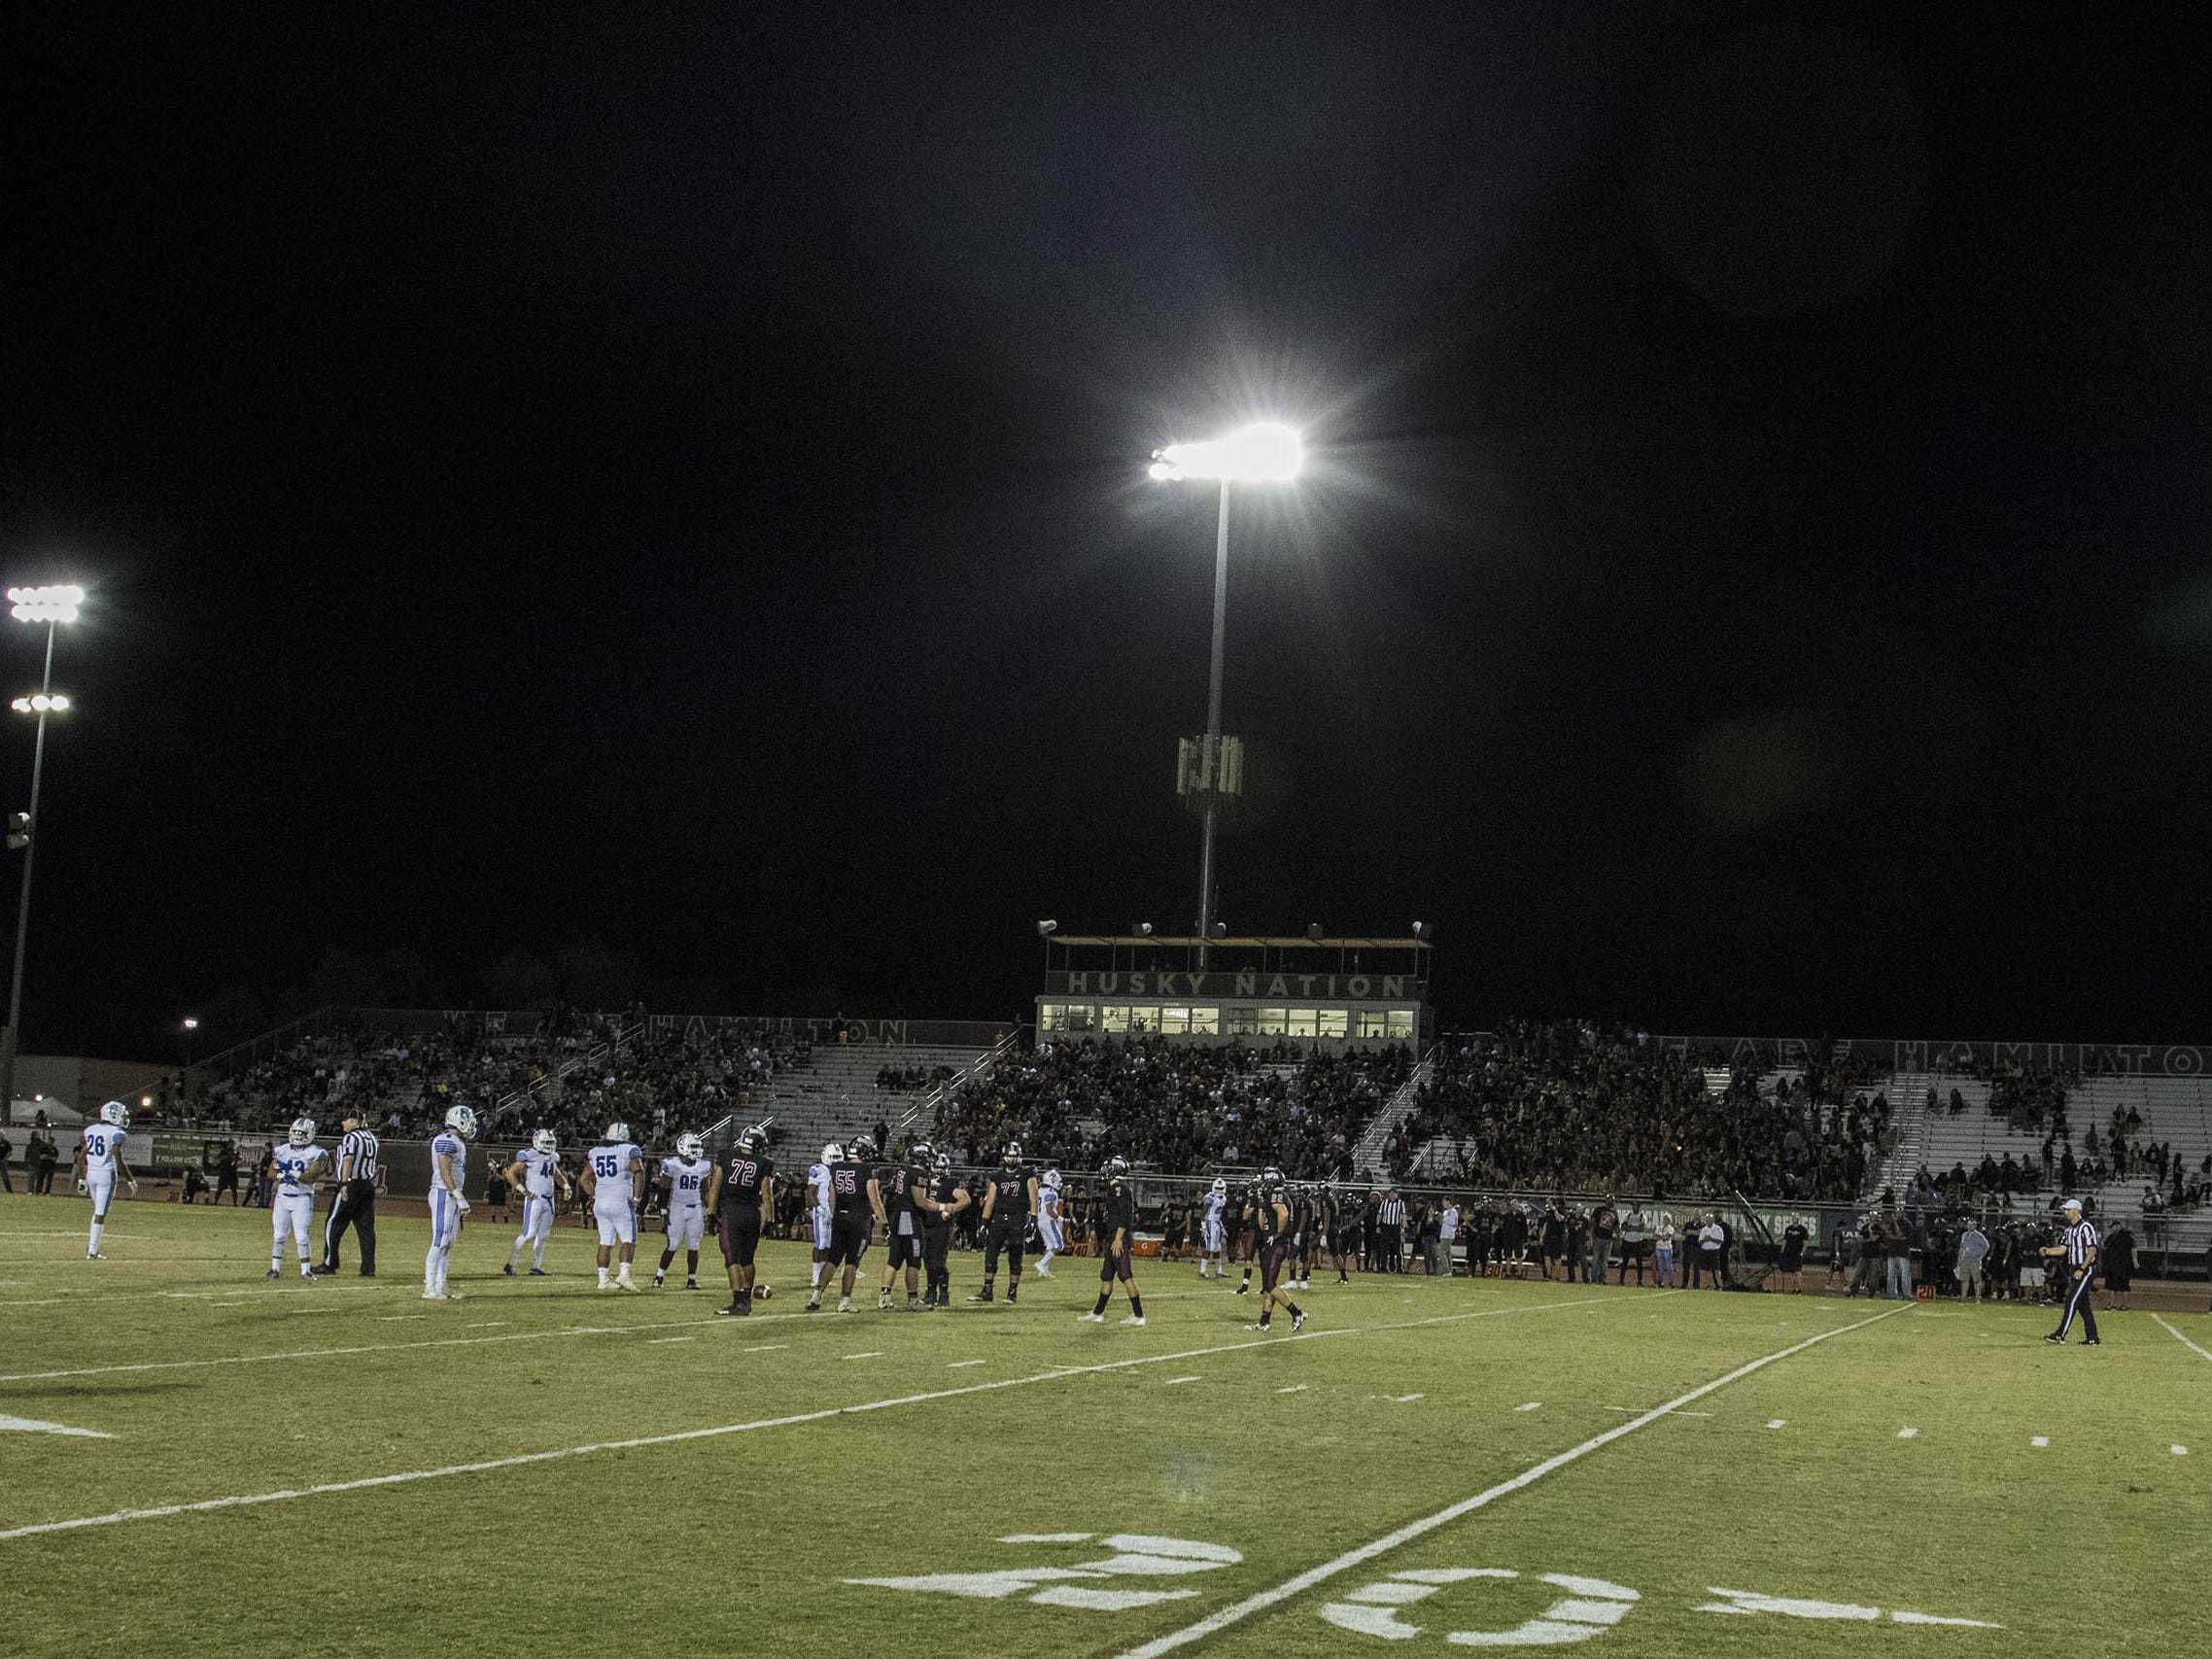 An unusual site, a lot of empty seats in the Hamilton bleachers for their crosstown game with the Chandler Wolves in Chandler, Friday, Oct. 26, 2018. #azhsfb